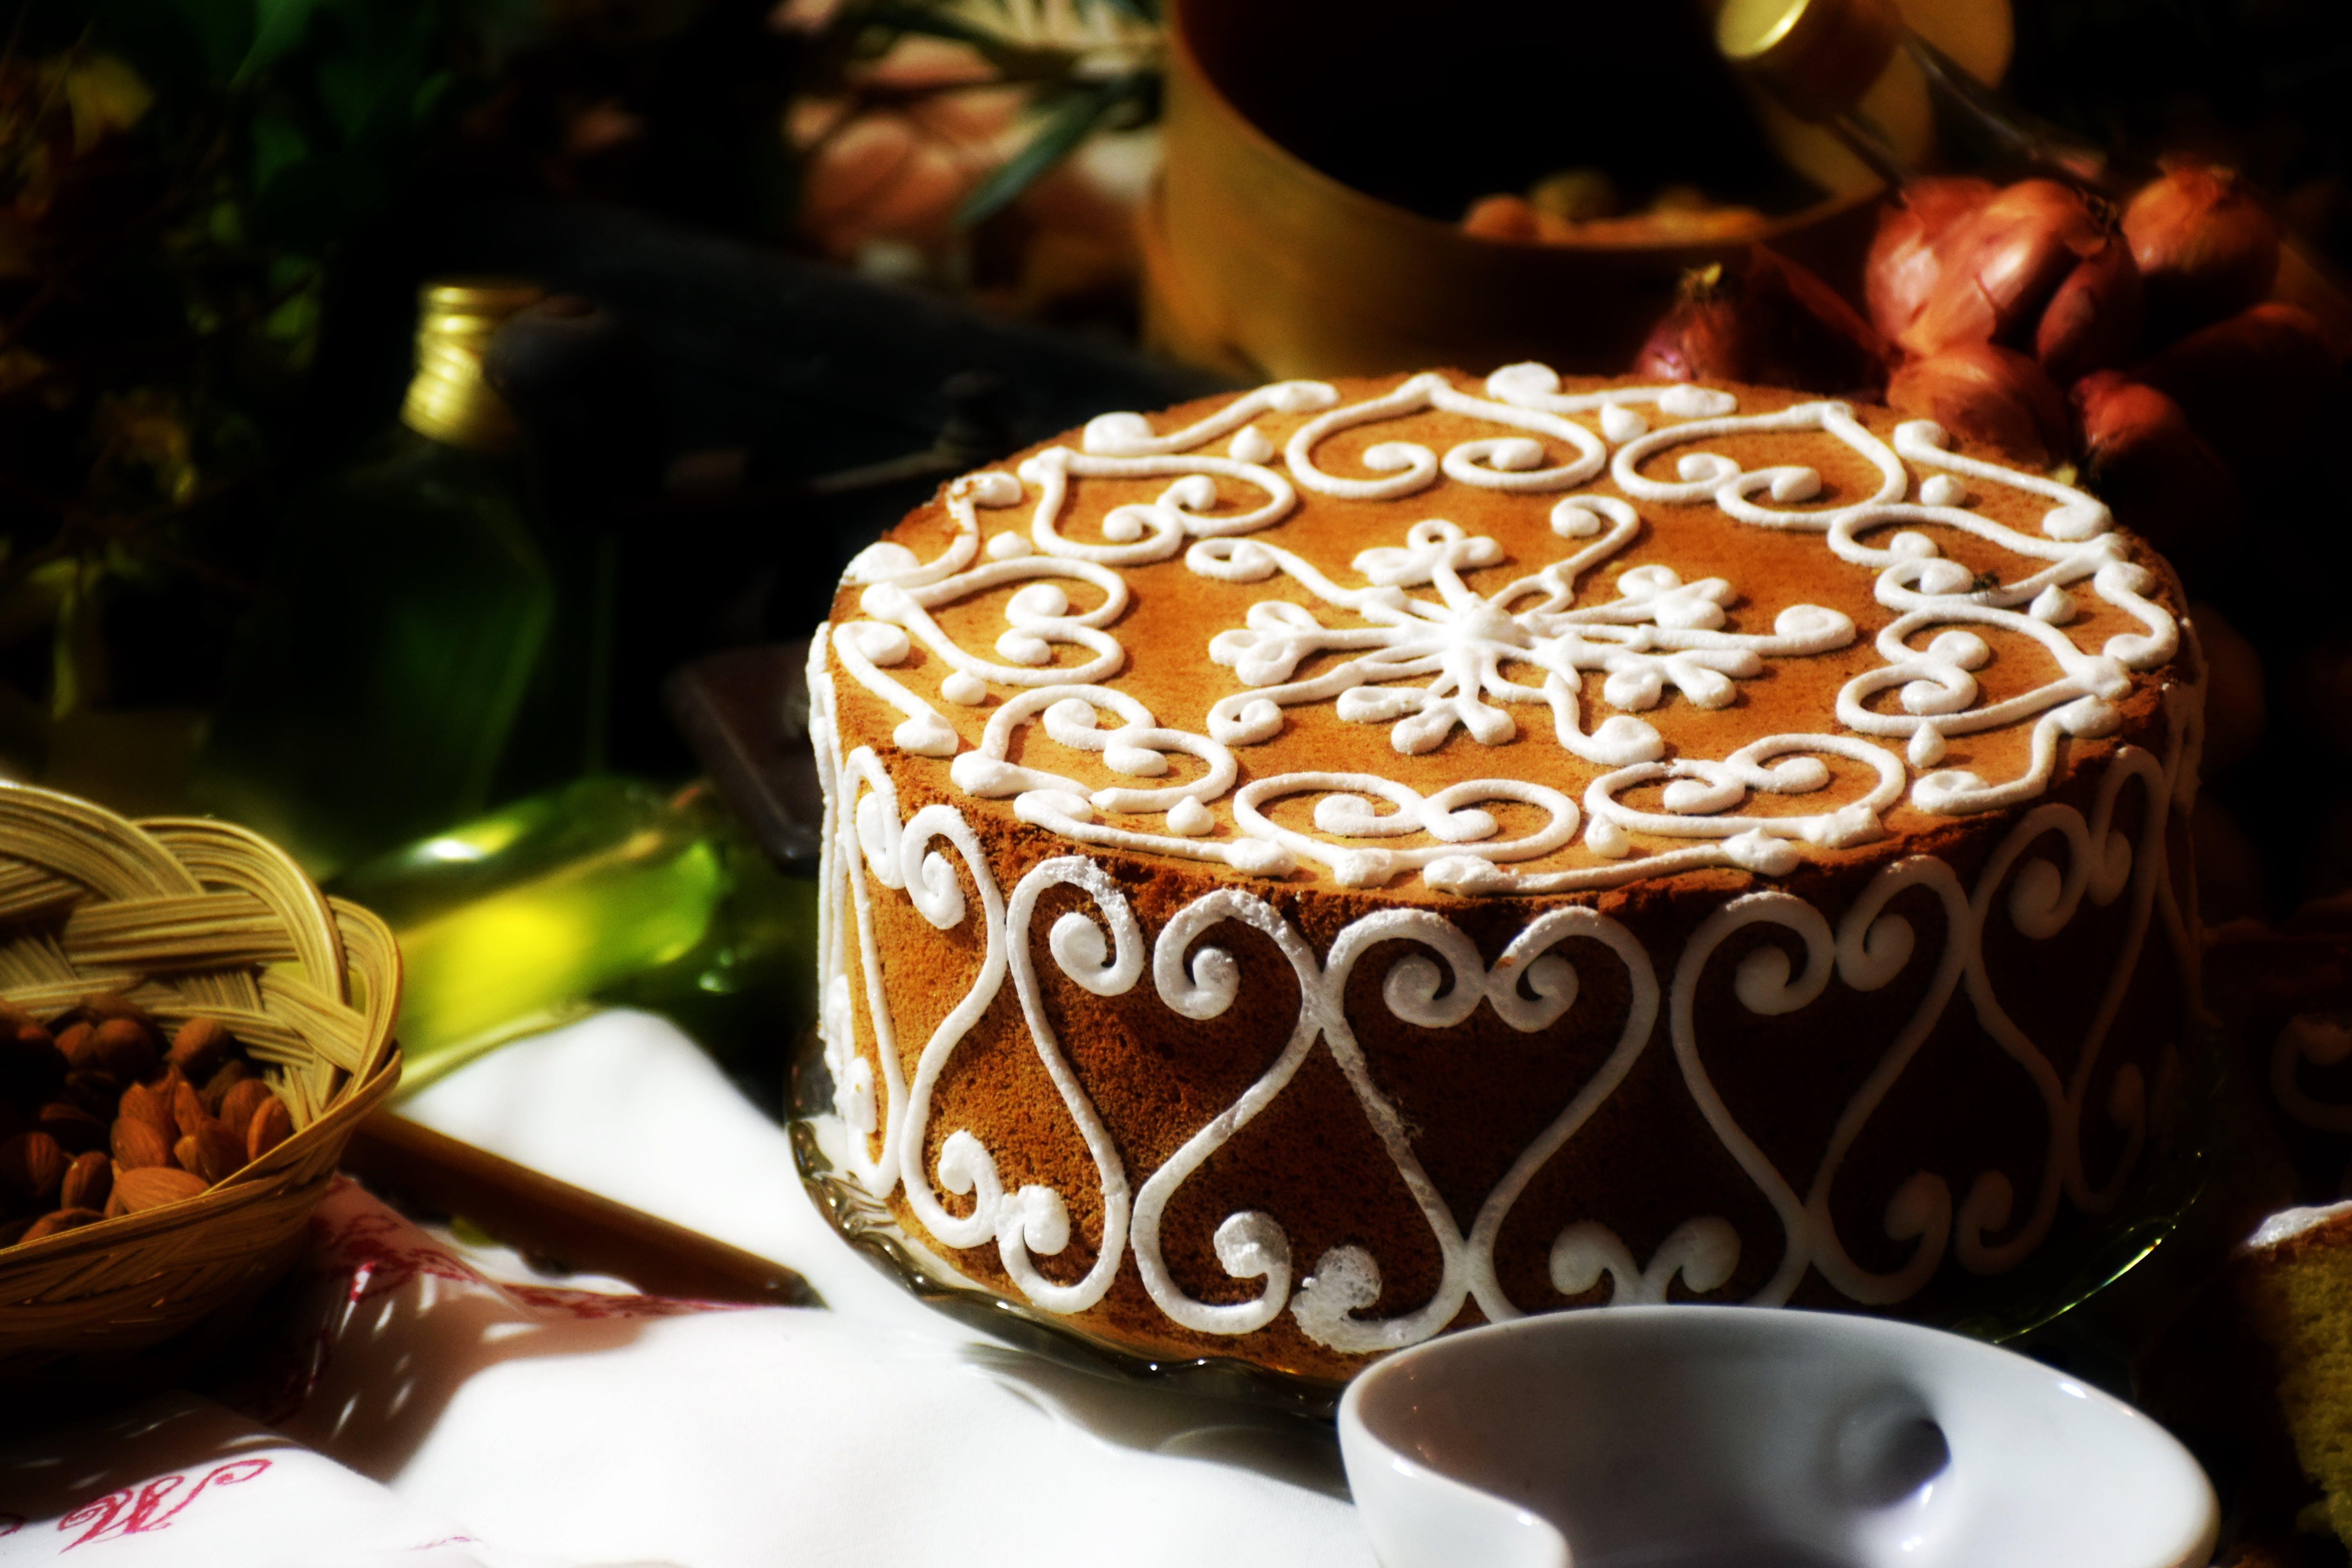 Brown Cake in Front of White Ceramic Bowl